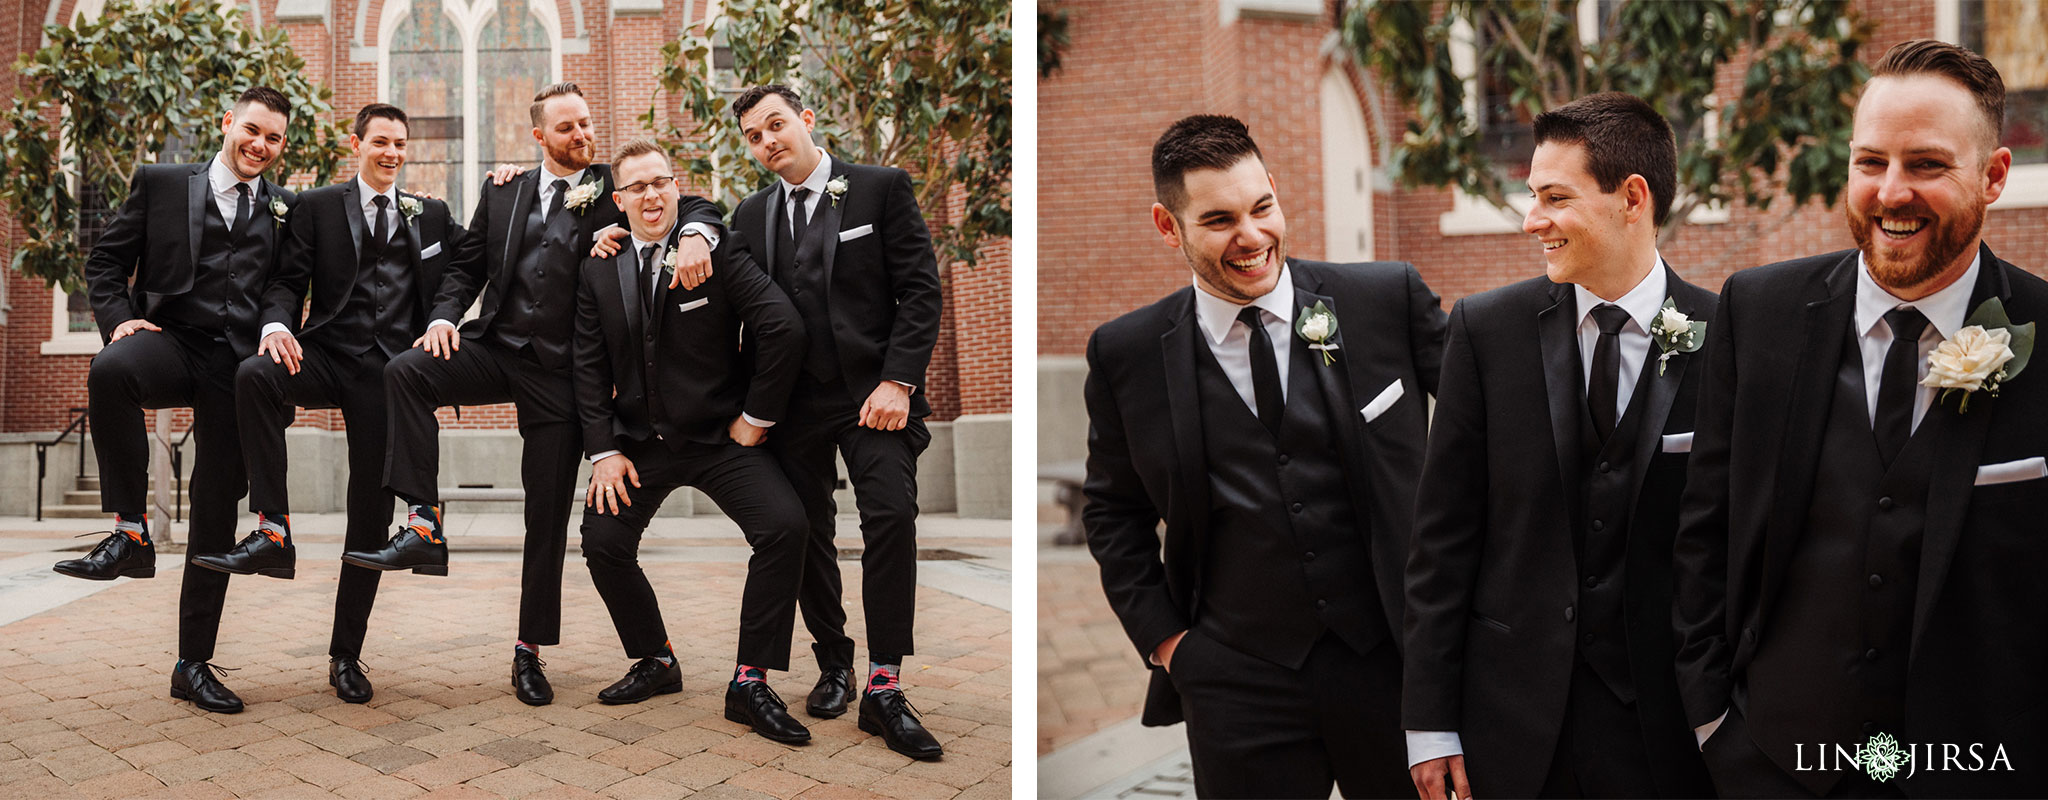 22 Womans Club Orange County Groomsmen Wedding Photography